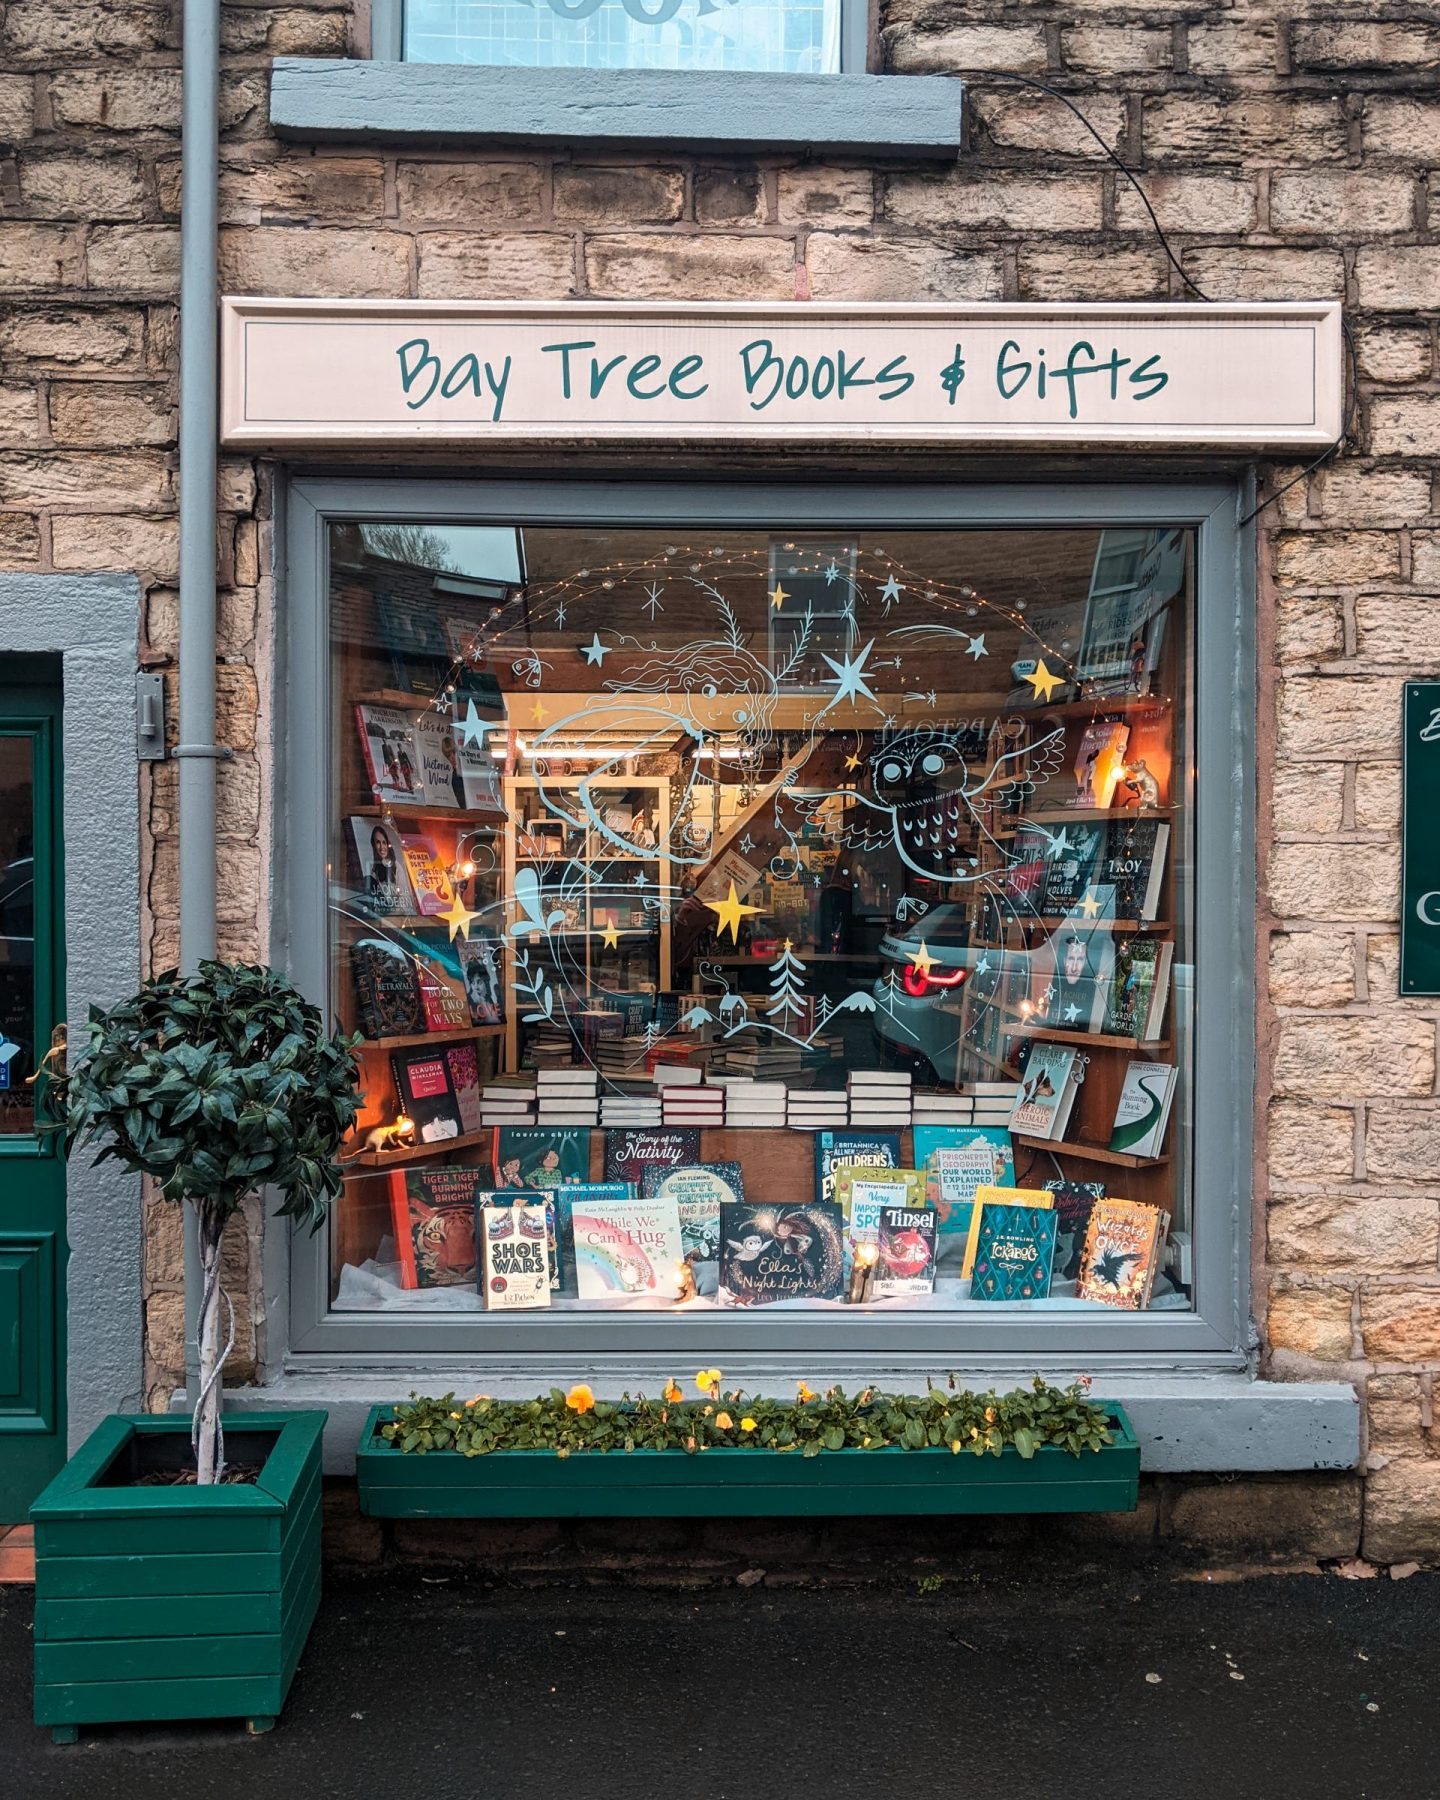 The shop window of Bay Tree Books in Glossop, Derbyshire. There is a Bay Tree in a pot outside.